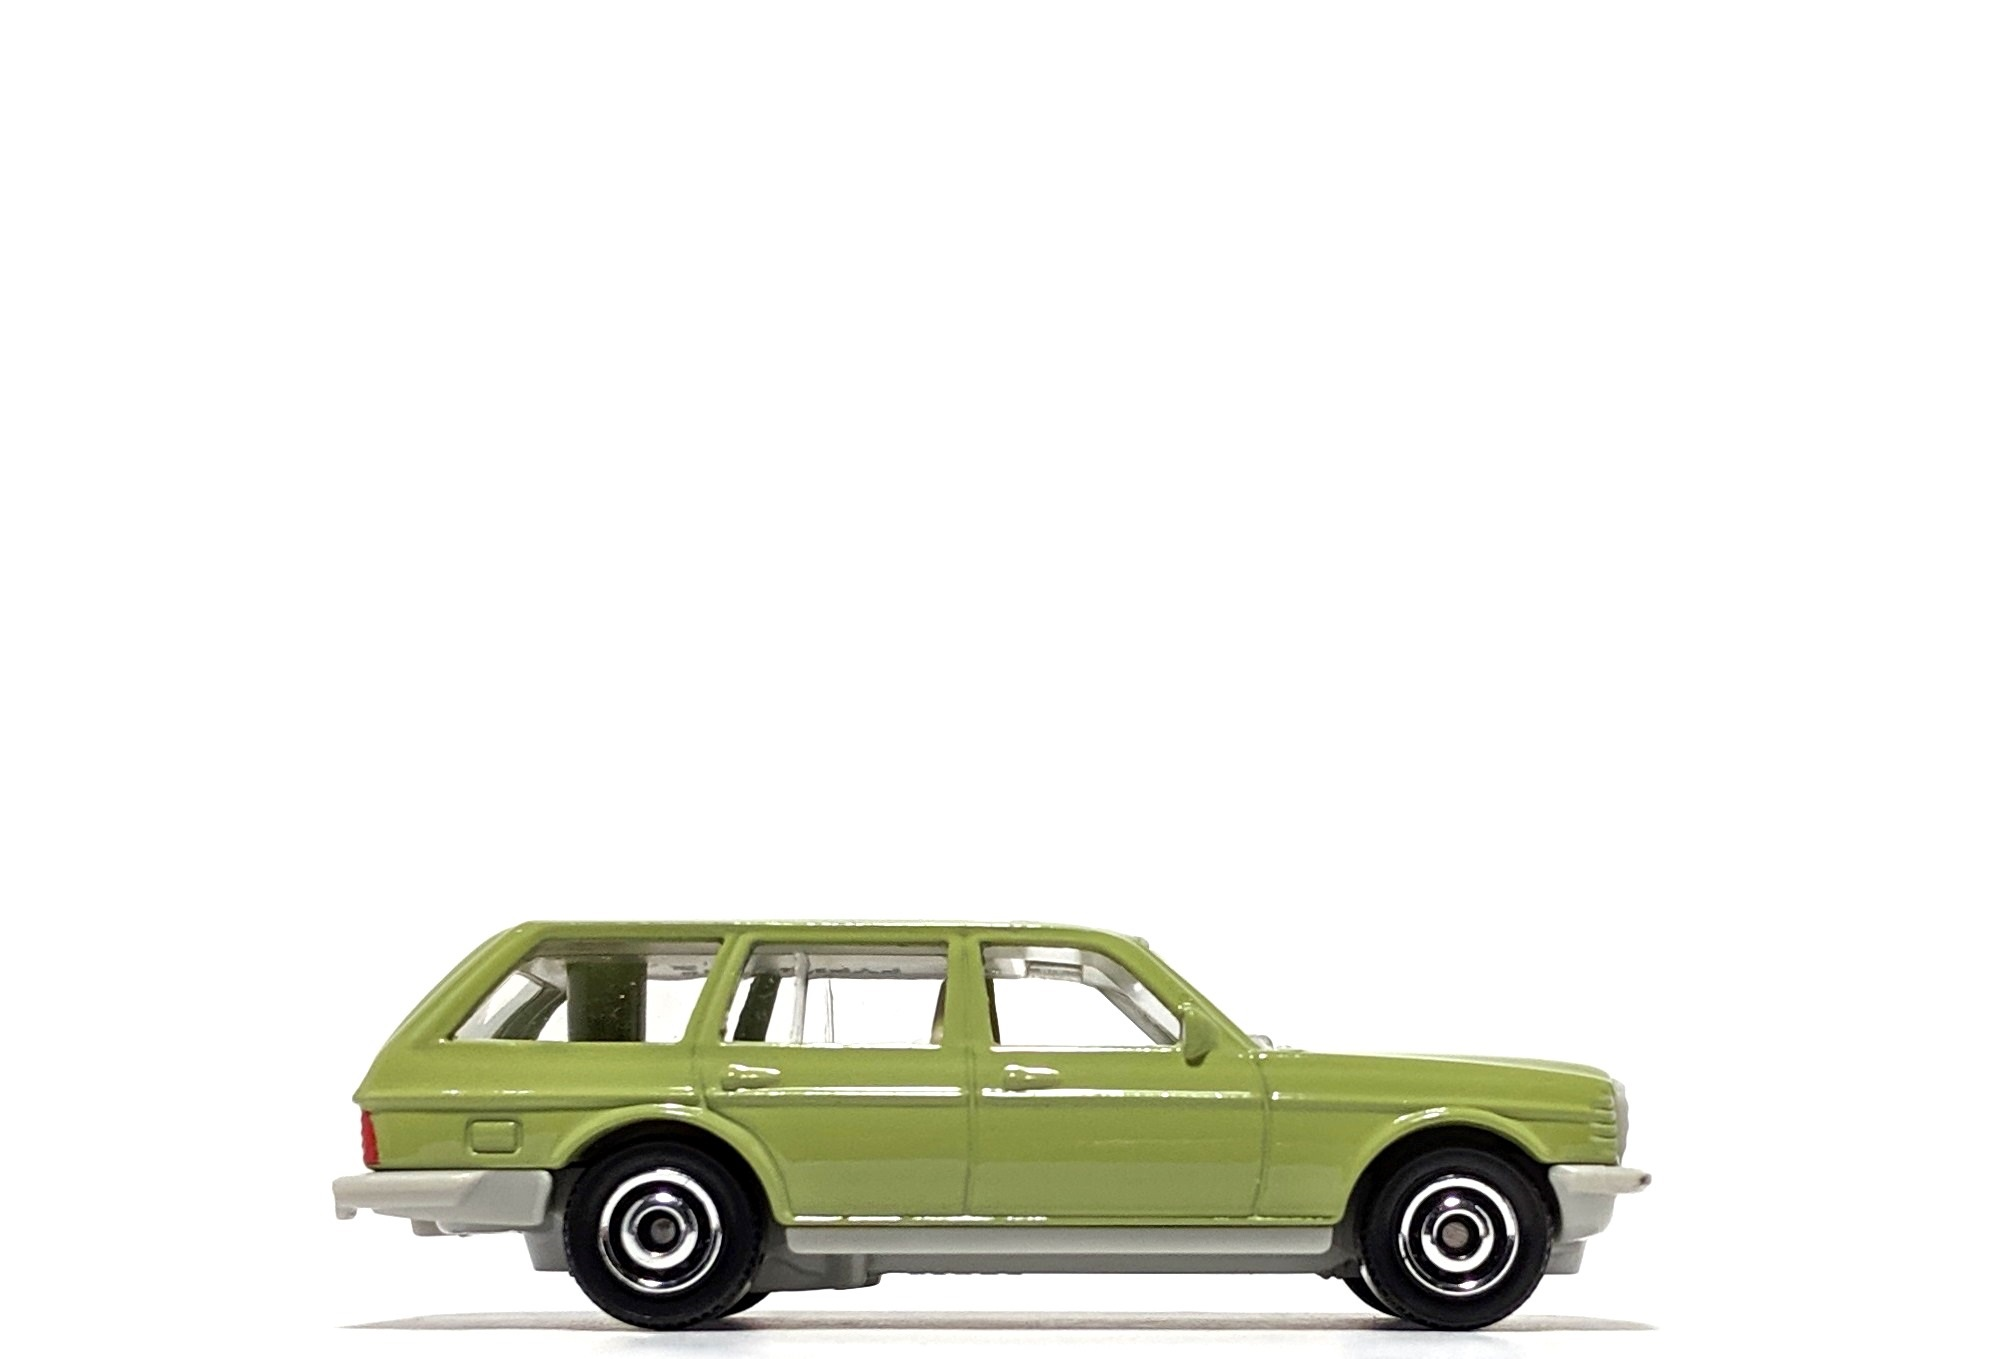 Mercedes-Benz W123 Wagon, by Matchbox